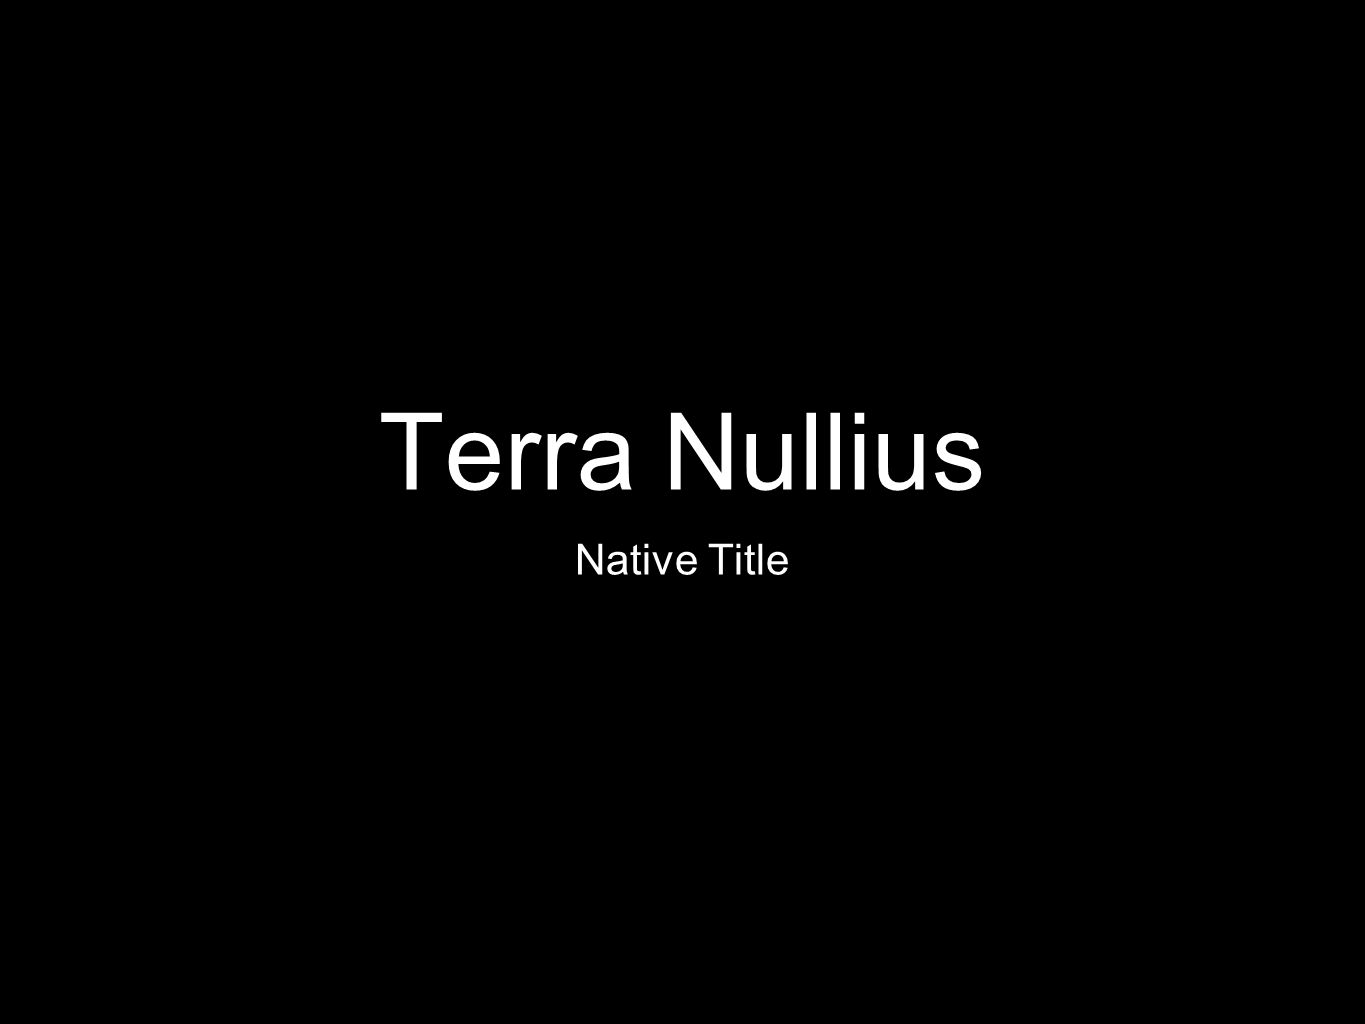 Terra Nullius Native Title